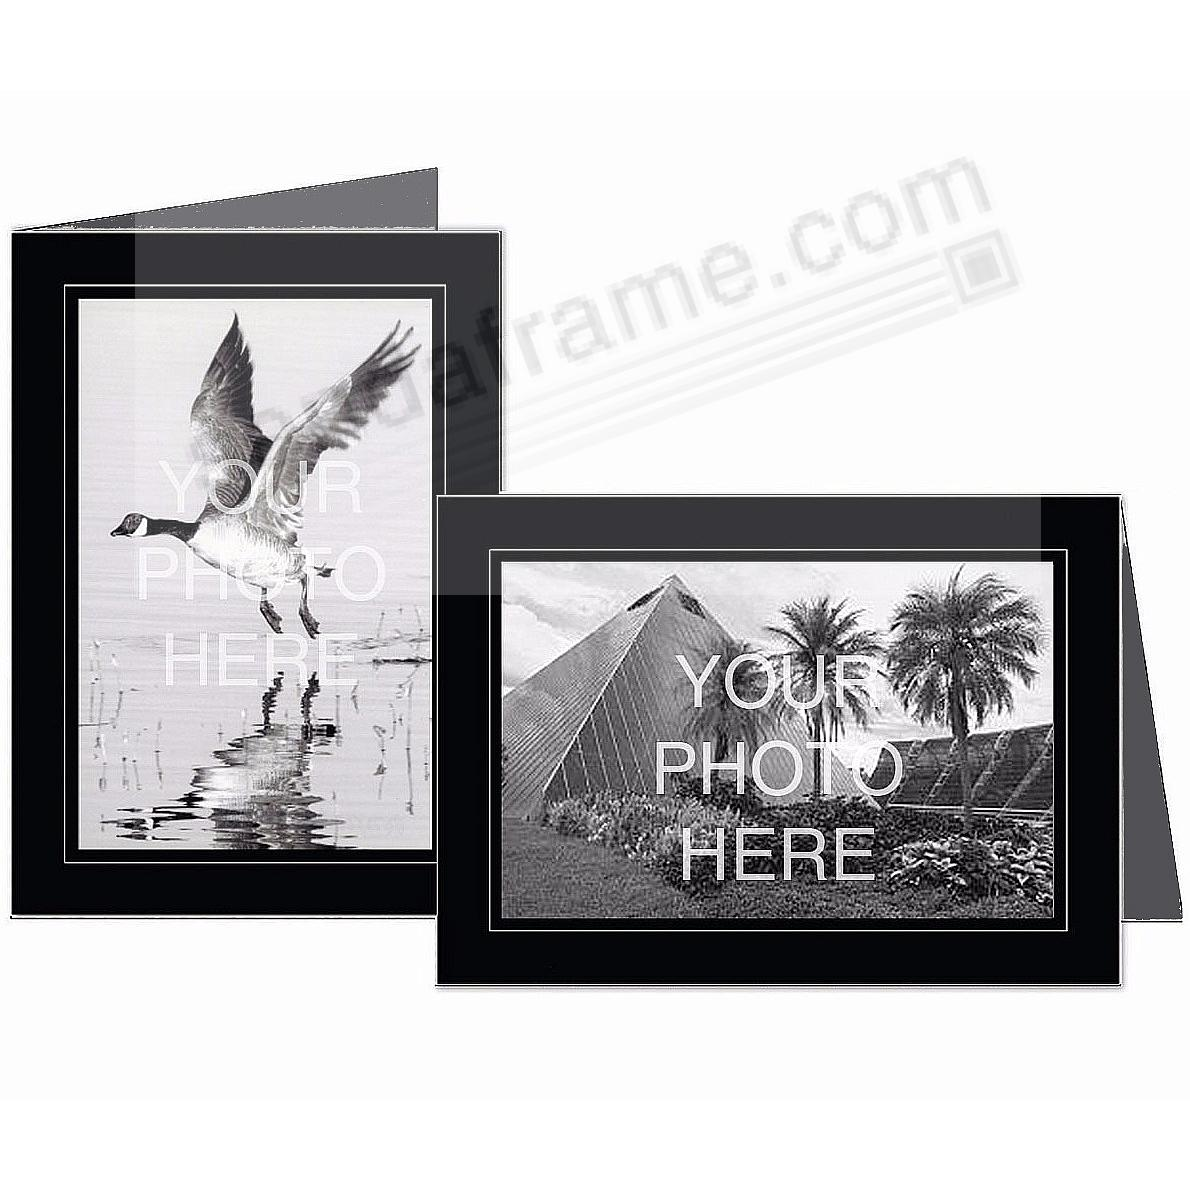 Black w/Grey Trim Border 5x7 Photo Insert Card (sold in 10s)